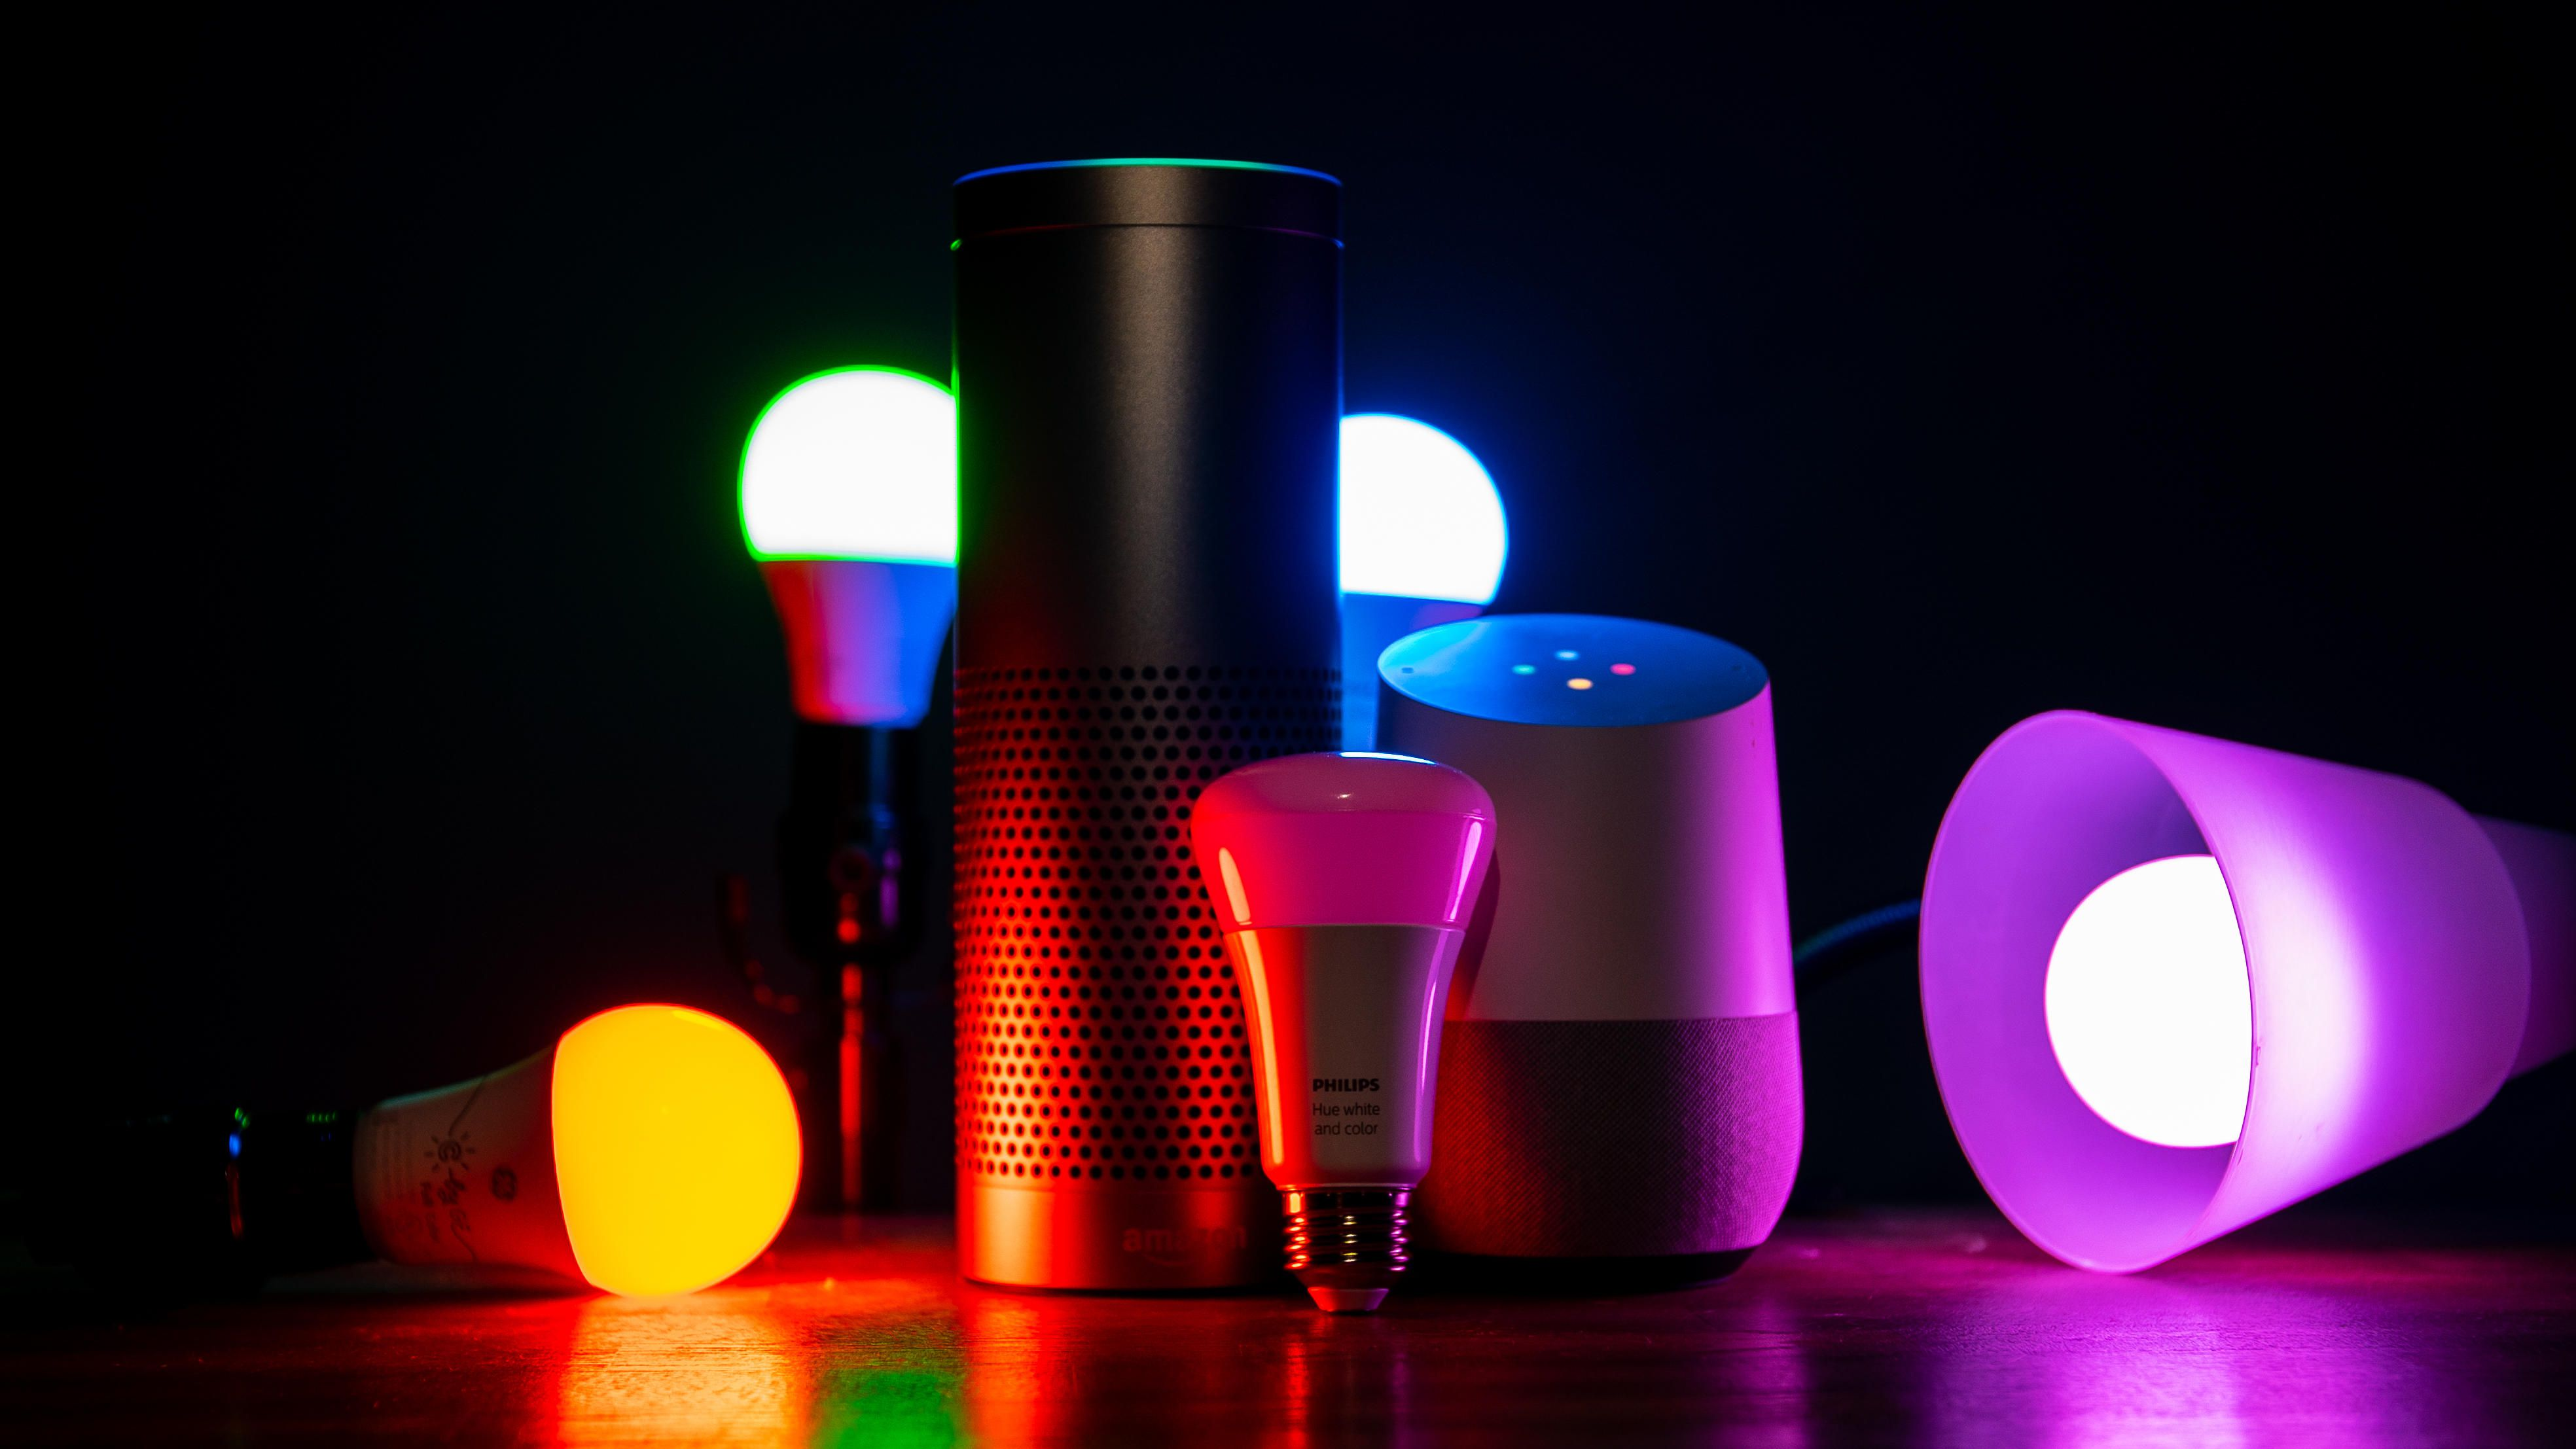 color-changing-smart-led-bulb-promo-philips-hue-lifx-c-by-ge-alexa-google-assistant-home-echo